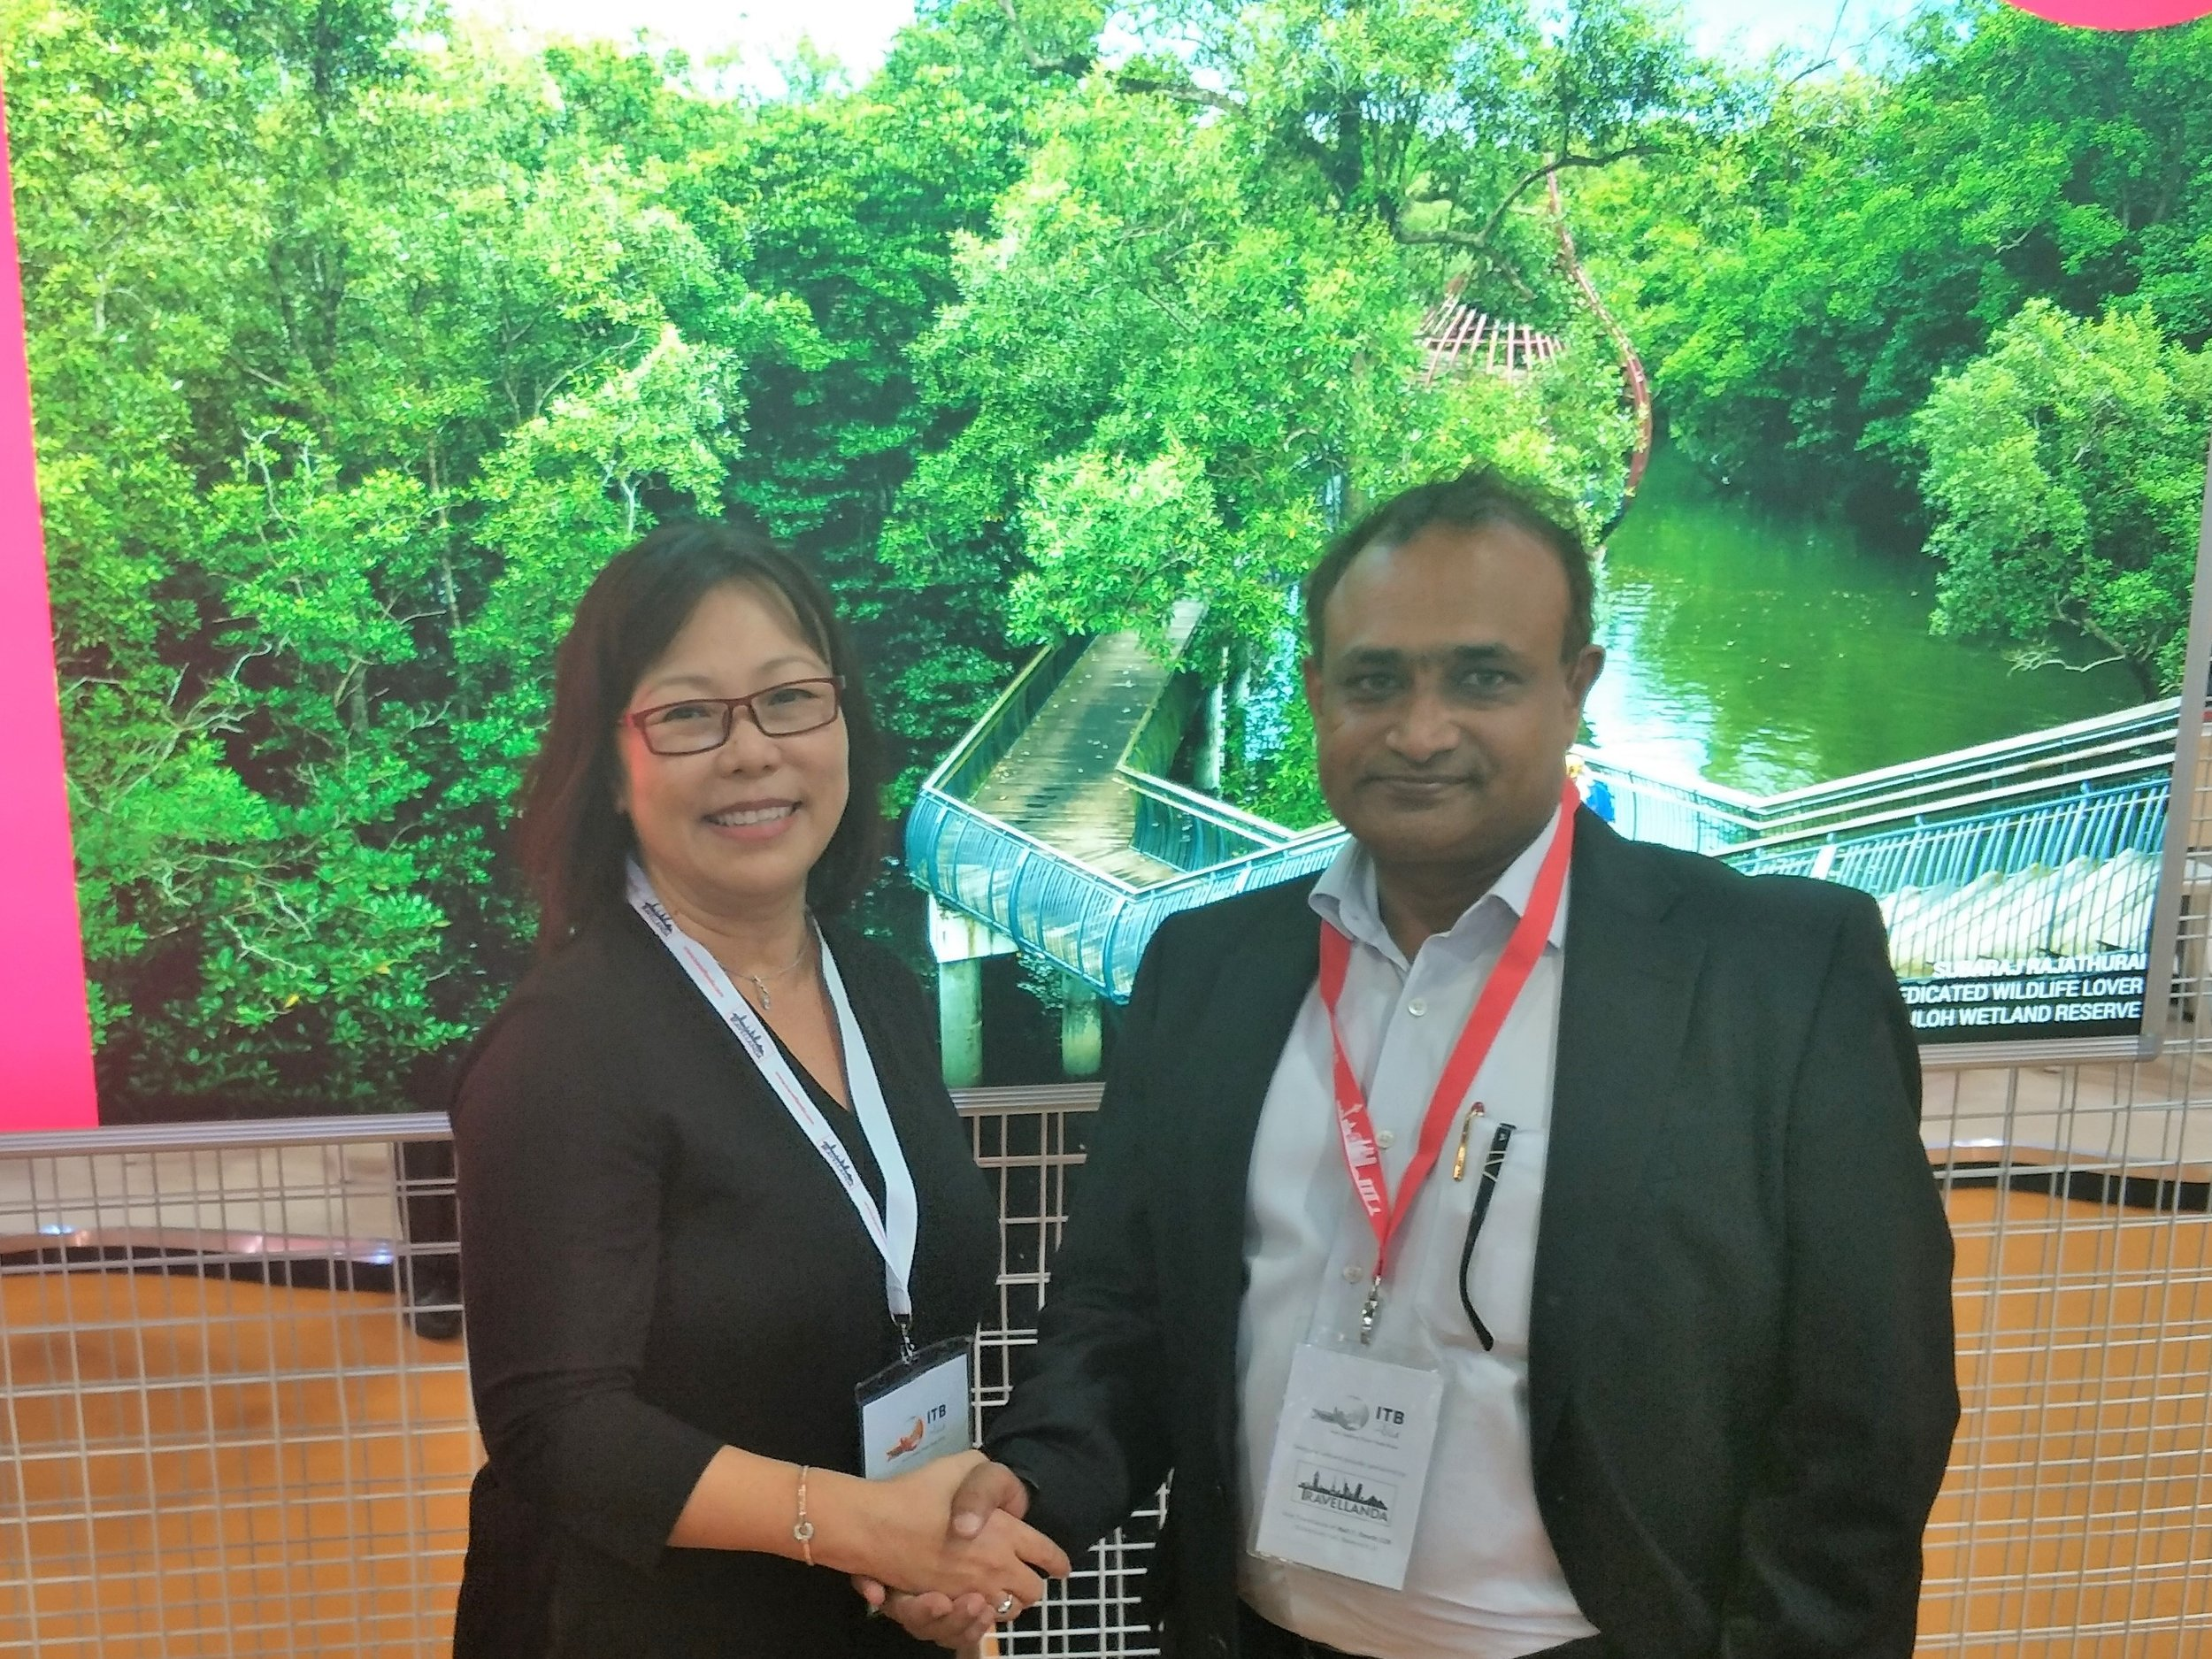 From left to right:  Ms Serene Law (VP, FLA), Mr Balaji Narayanan (Director - Sales, Millennium Tours & Travel).